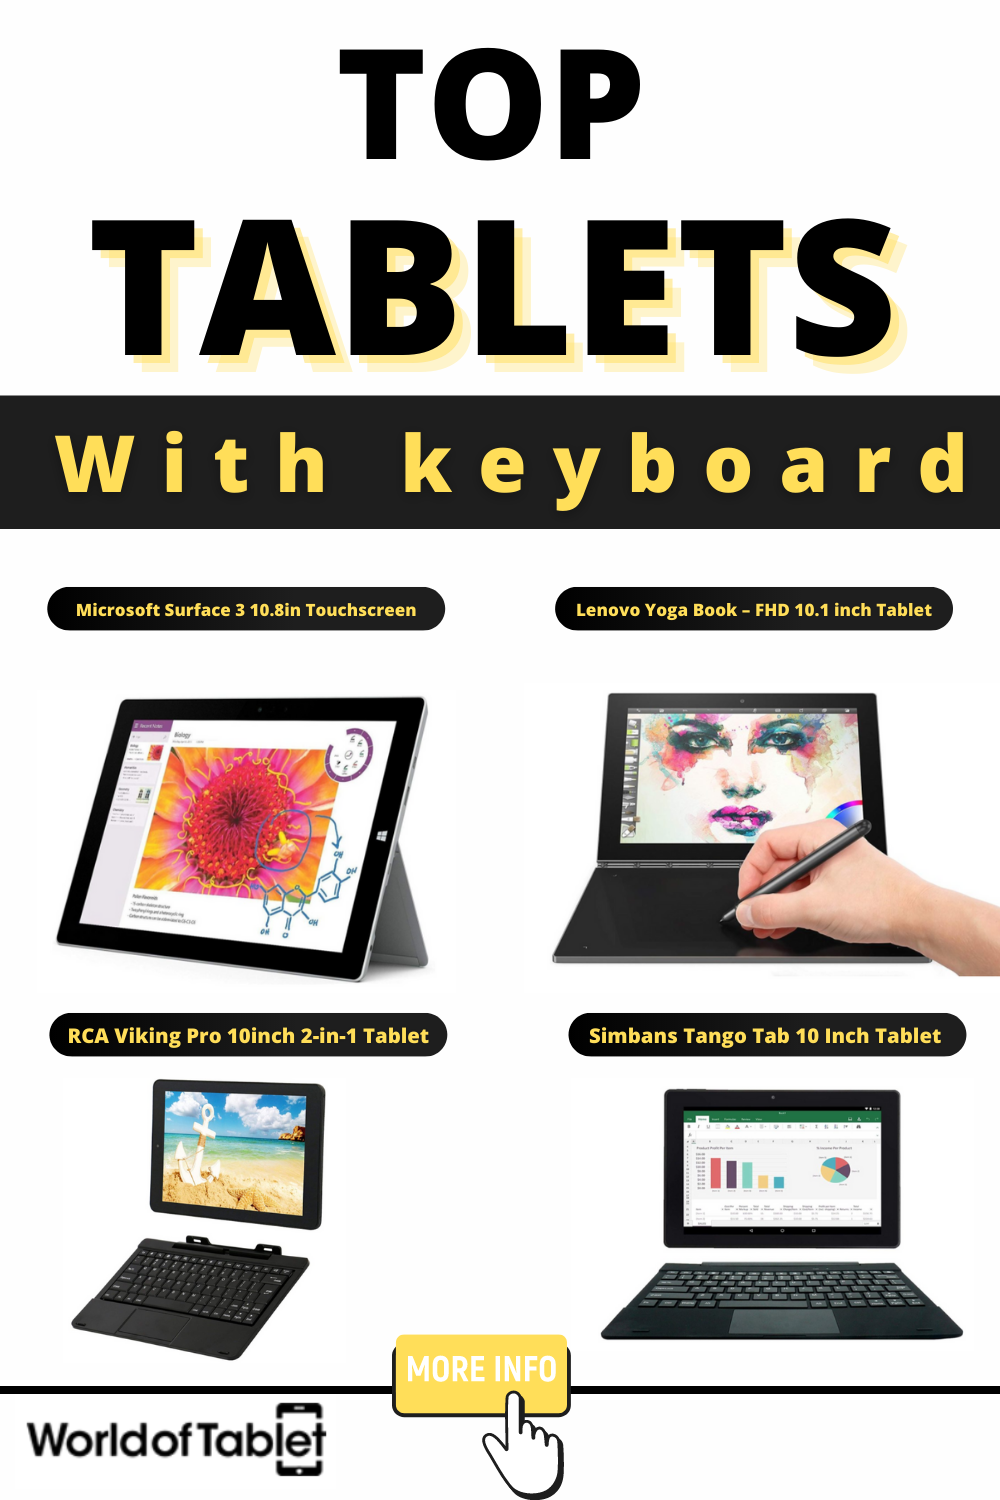 Top 2 In 1 Tablets With Keyboard Tablet Lenovo Yoga Book Keyboards